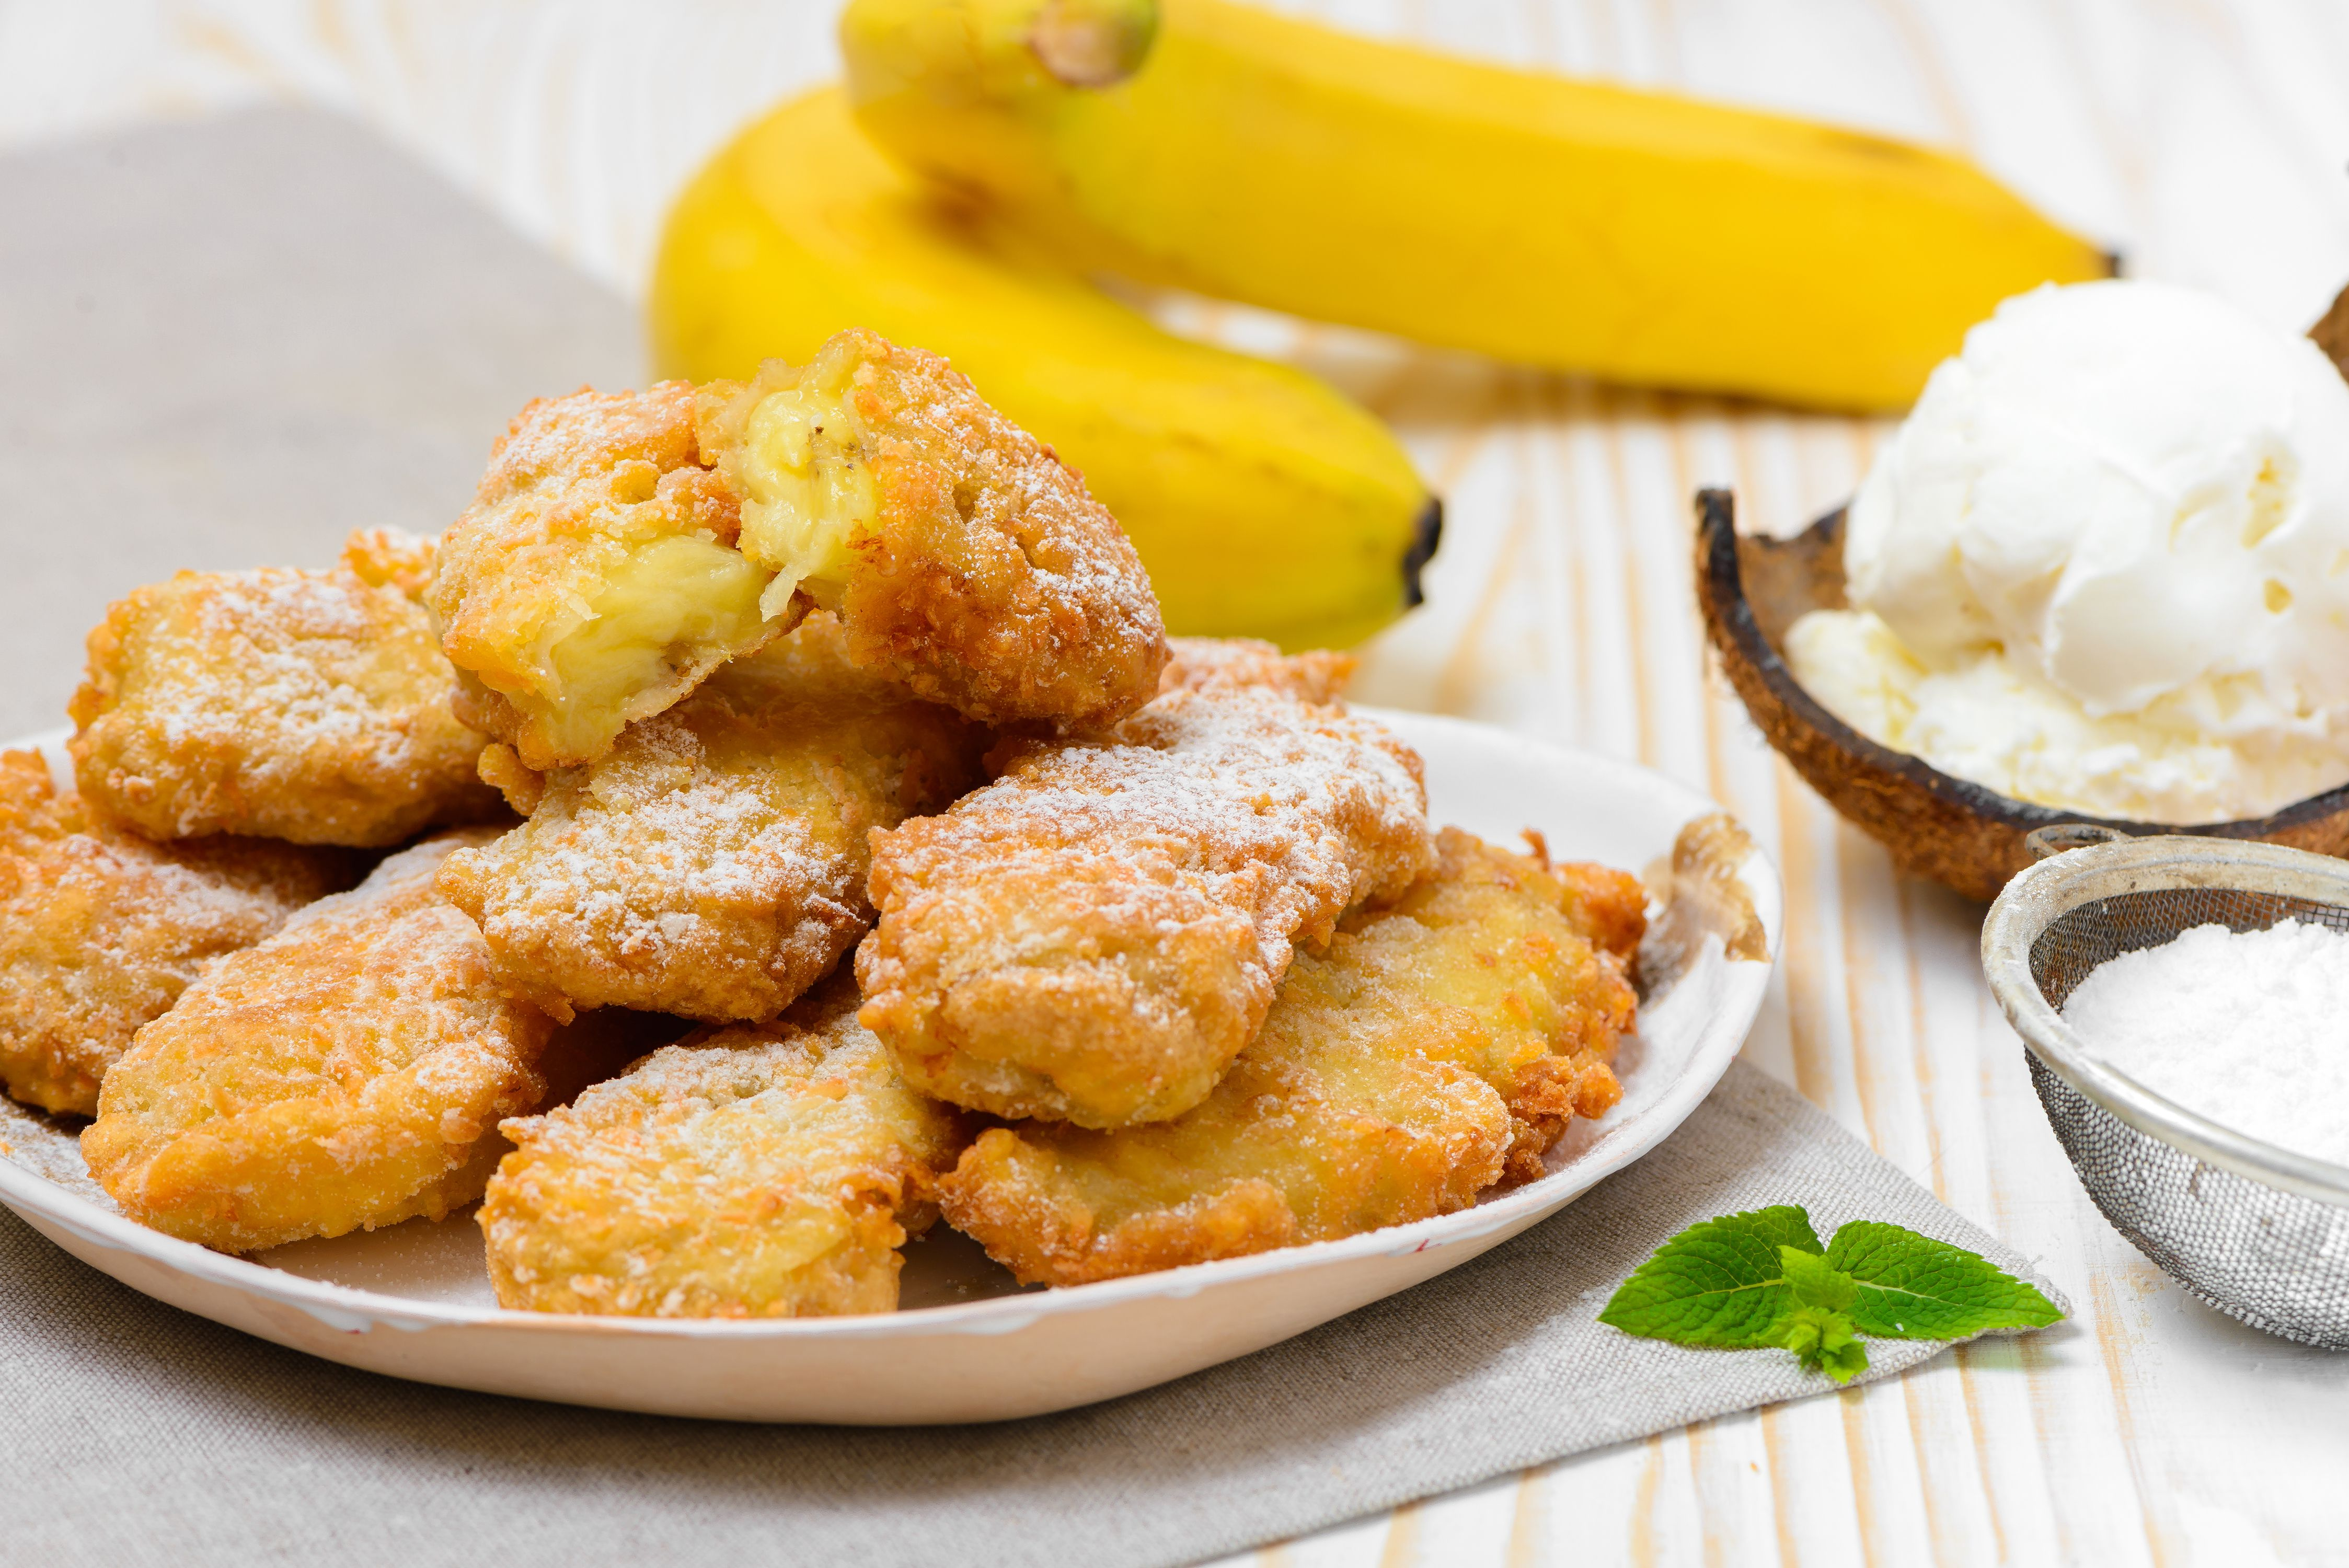 Try Fried Bananas, an Irresistible Thai Dessert and Snack Food